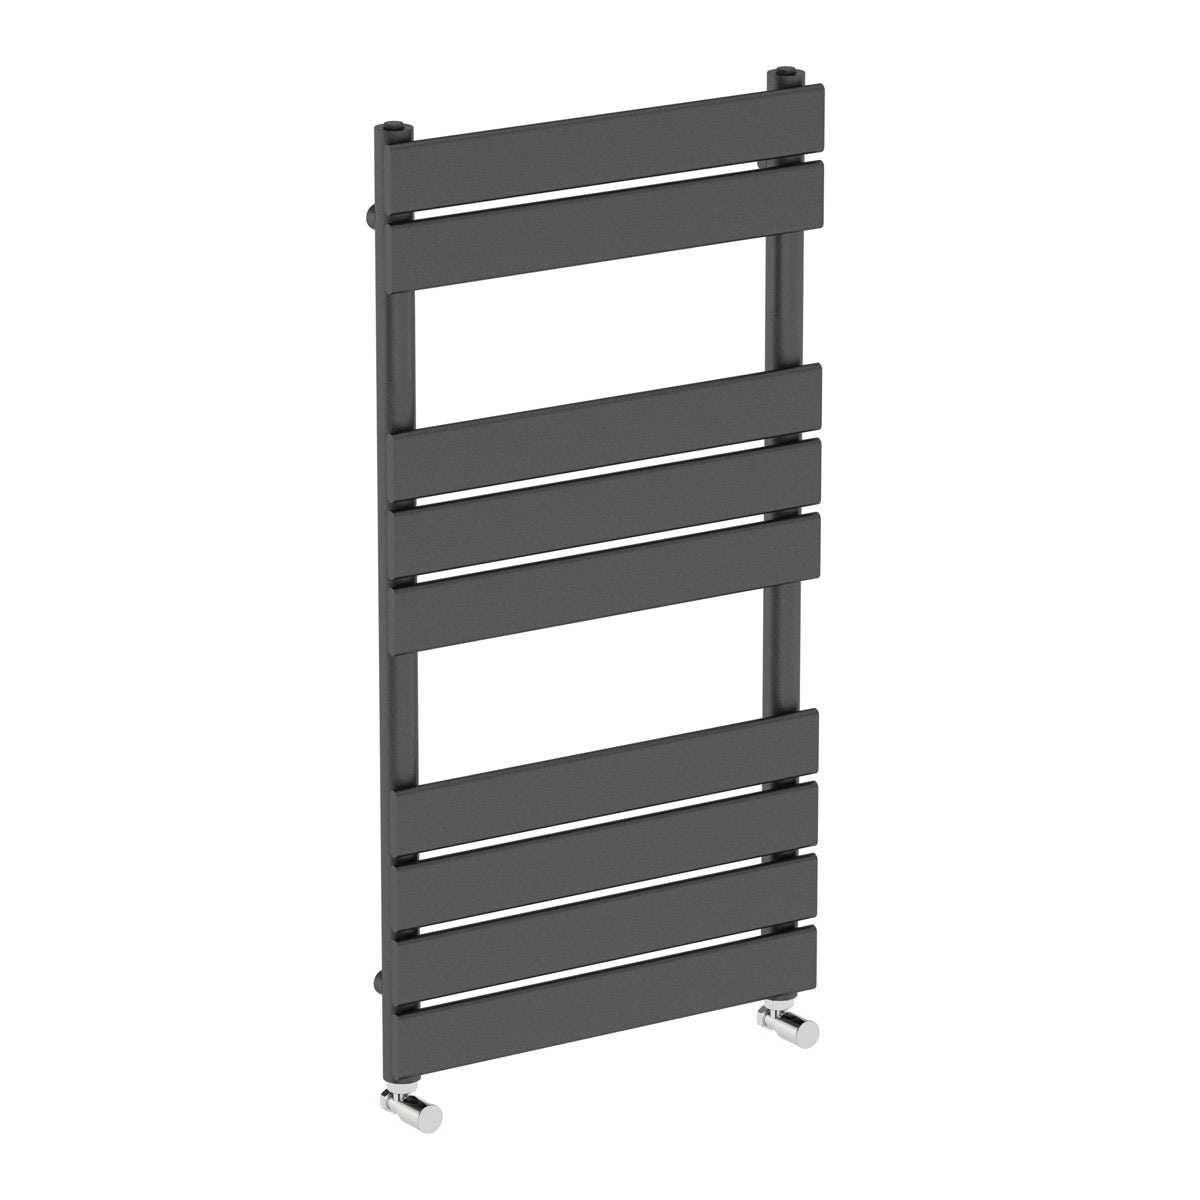 Orchard Wharfe anthracite heated towel rail 950 x 500 offer pack